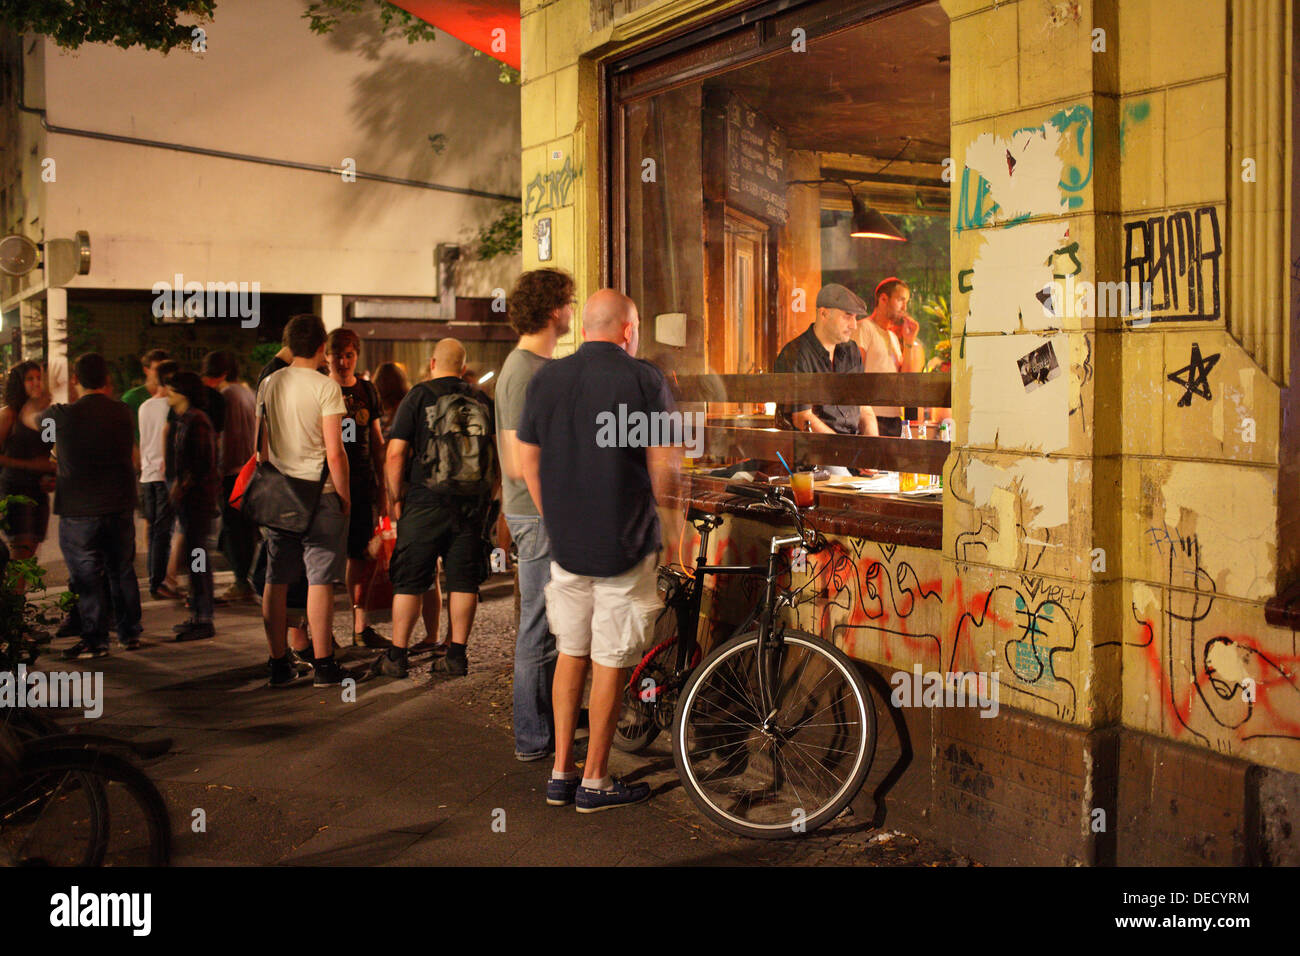 Berlin, Germany, guests of the pub Ae standing on the sidewalk - Stock Image